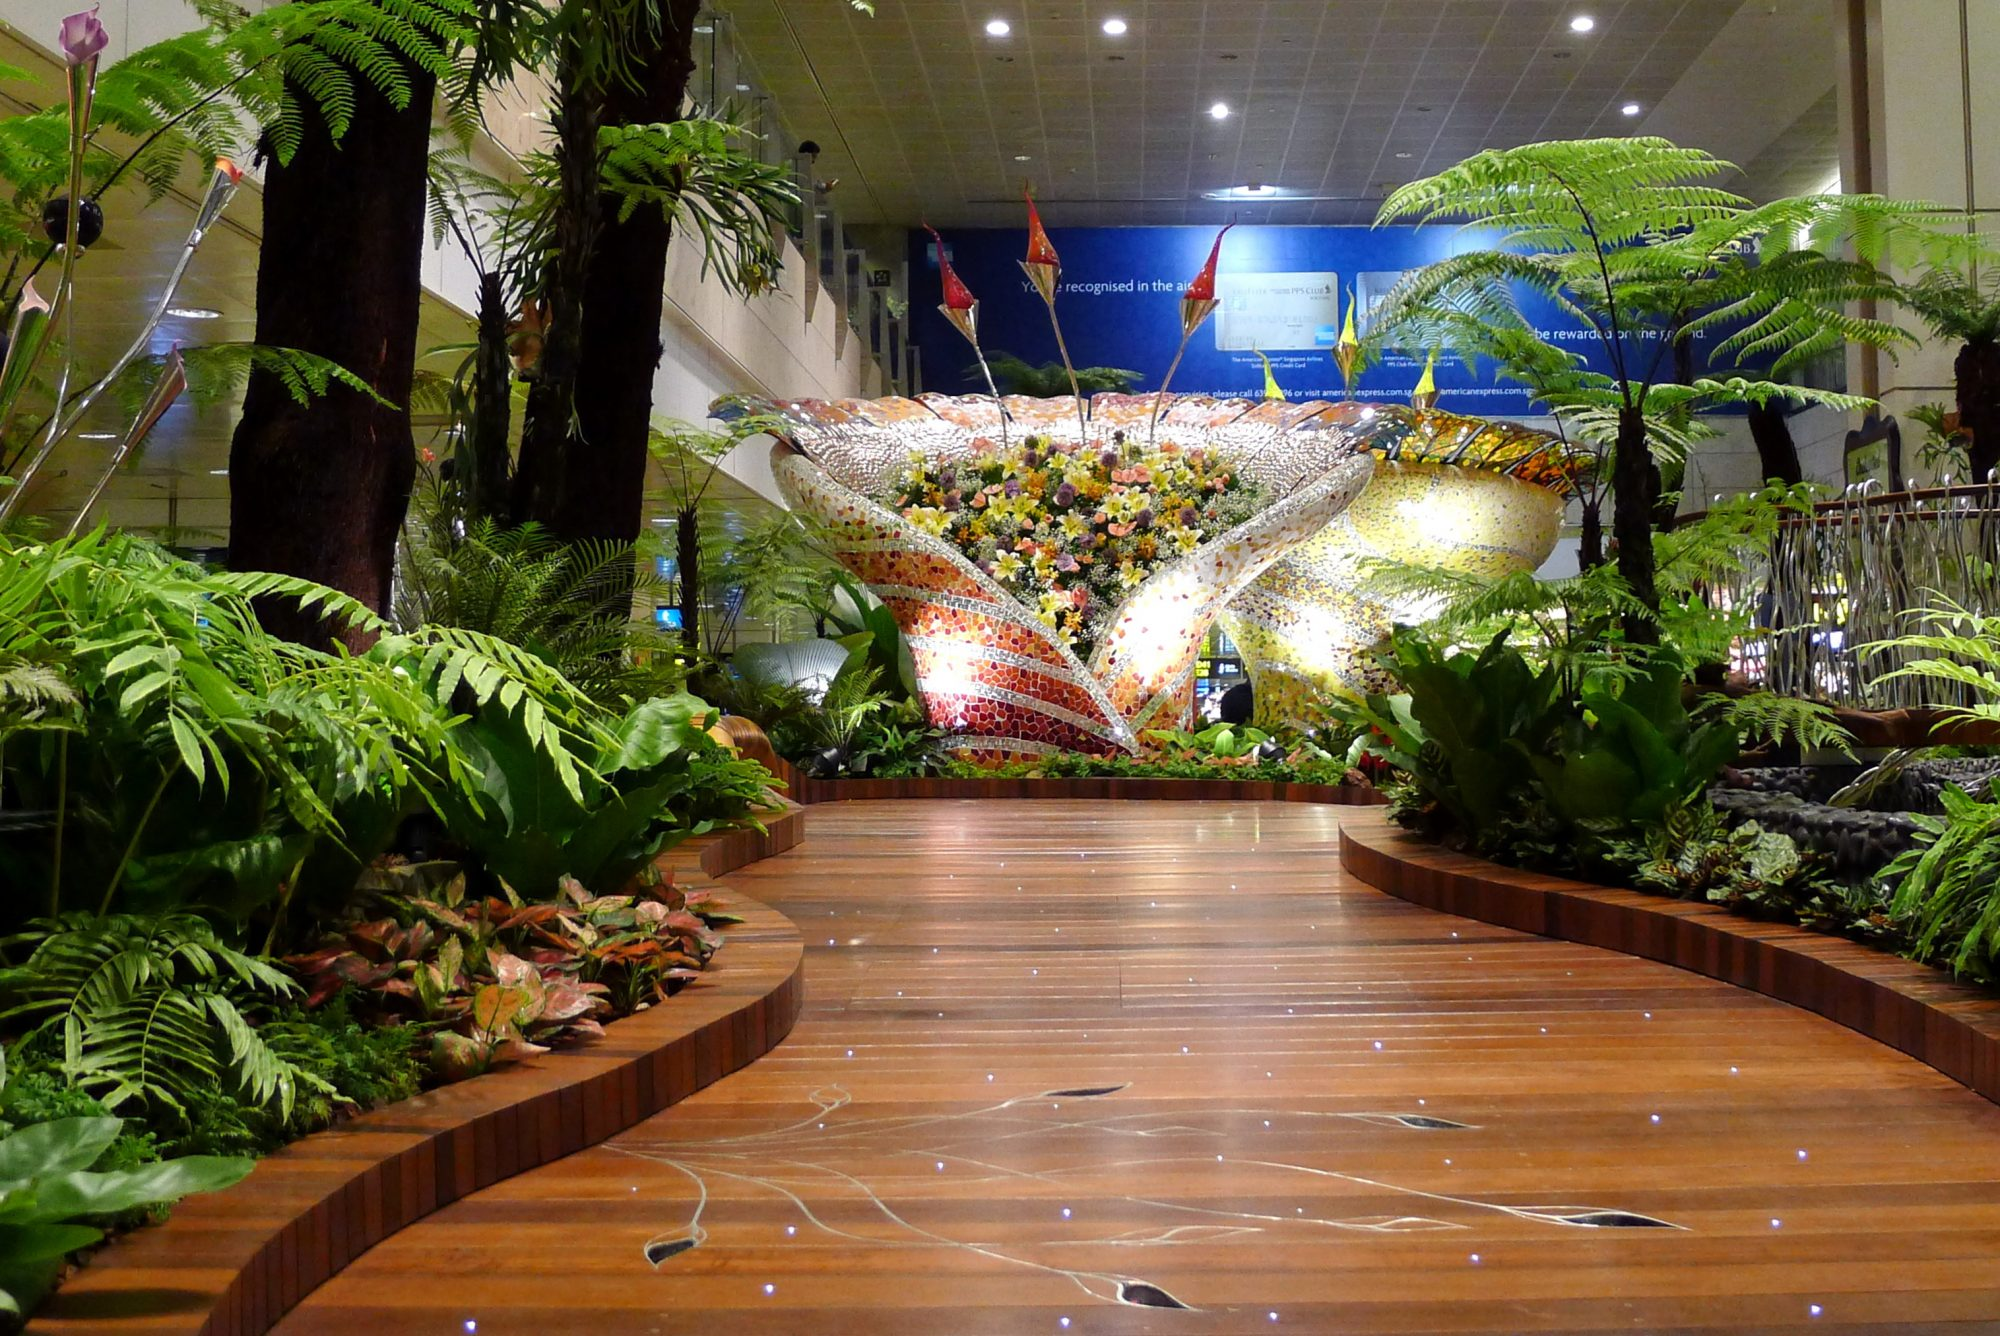 No. 1 International: Changi International Airport, Singapore